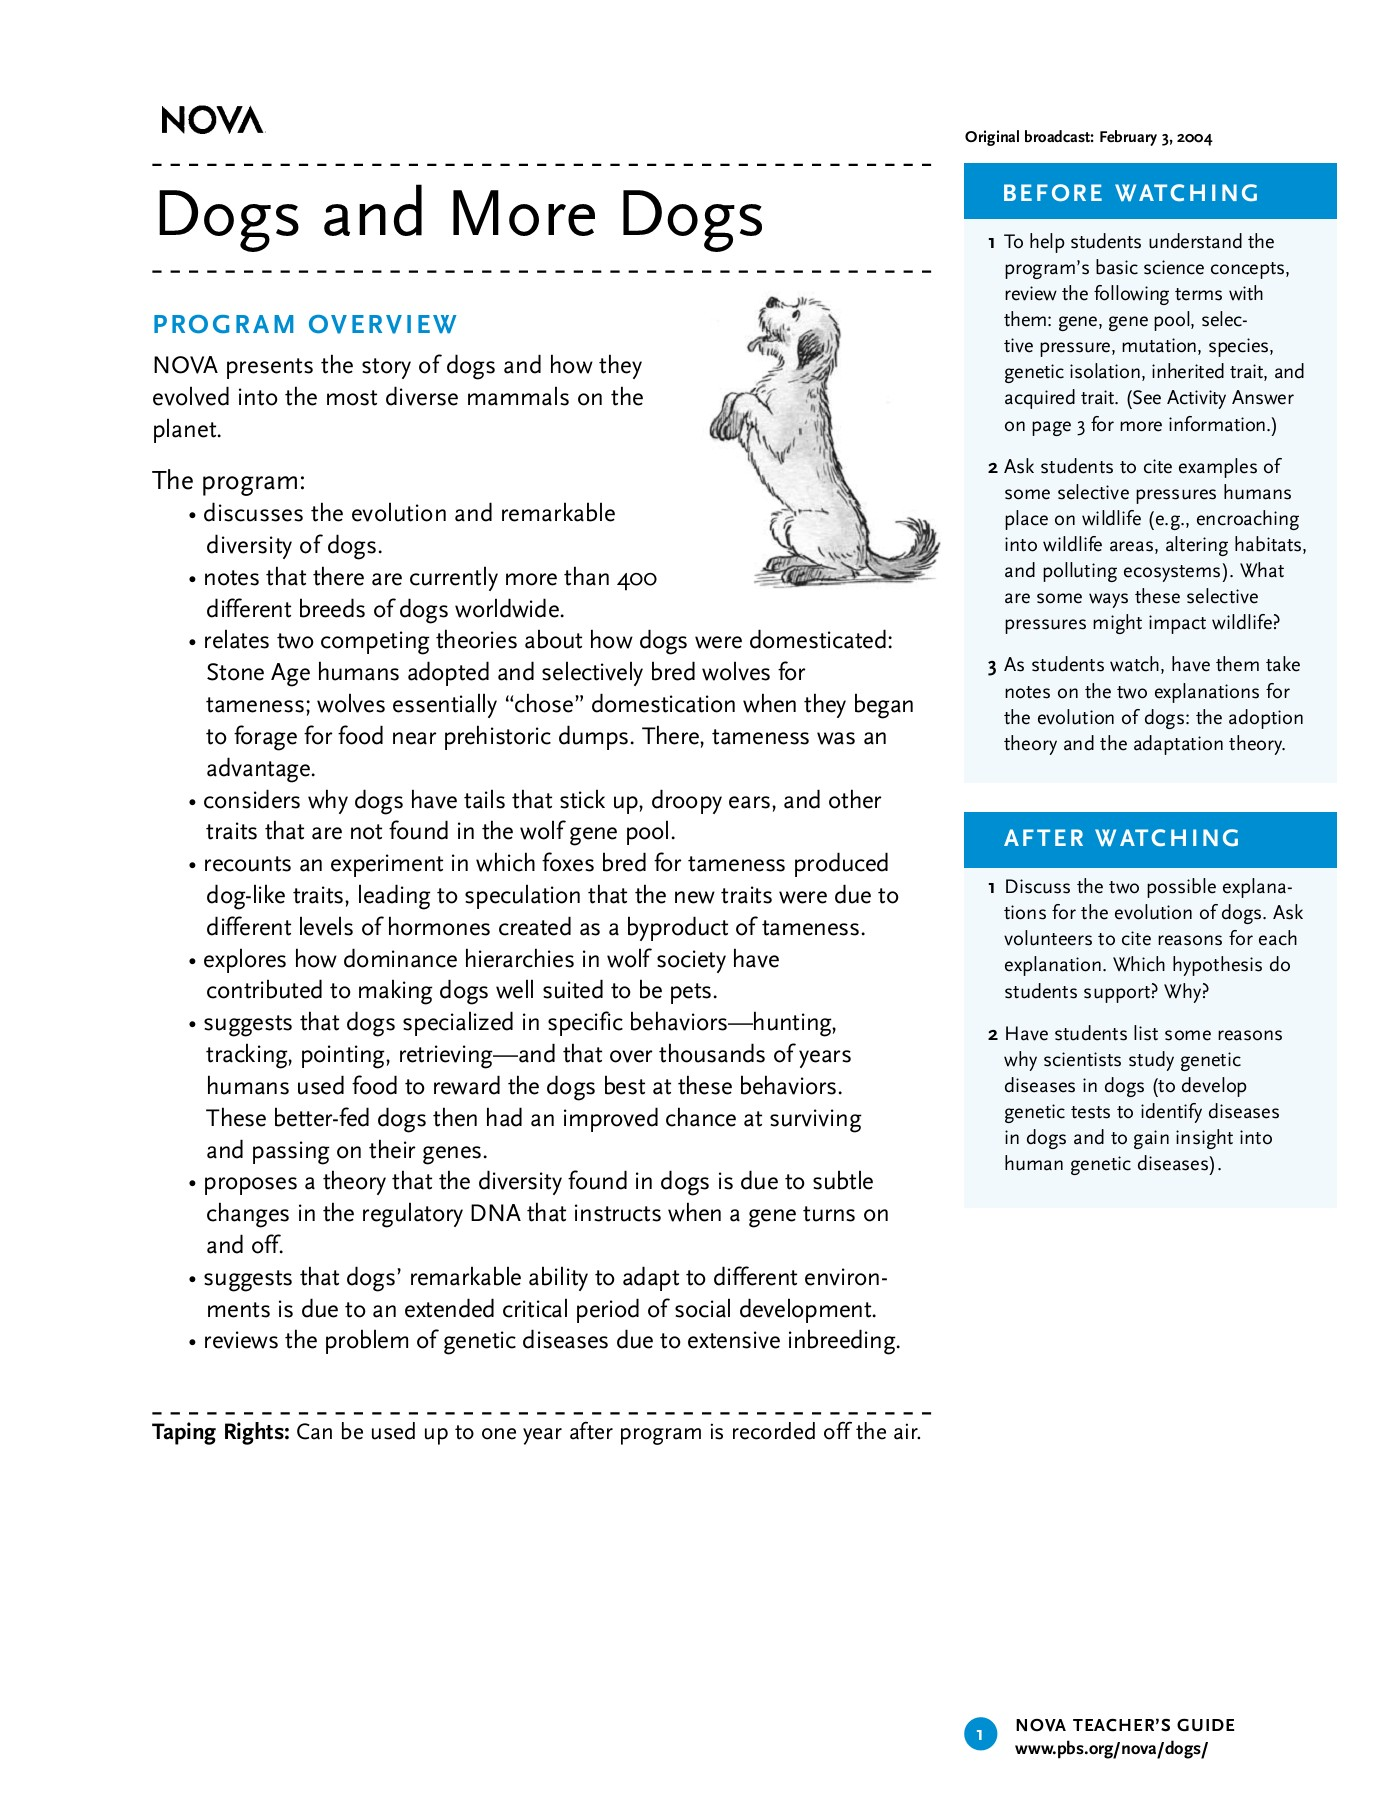 Nova Dogs And More Dogs Worksheet Key